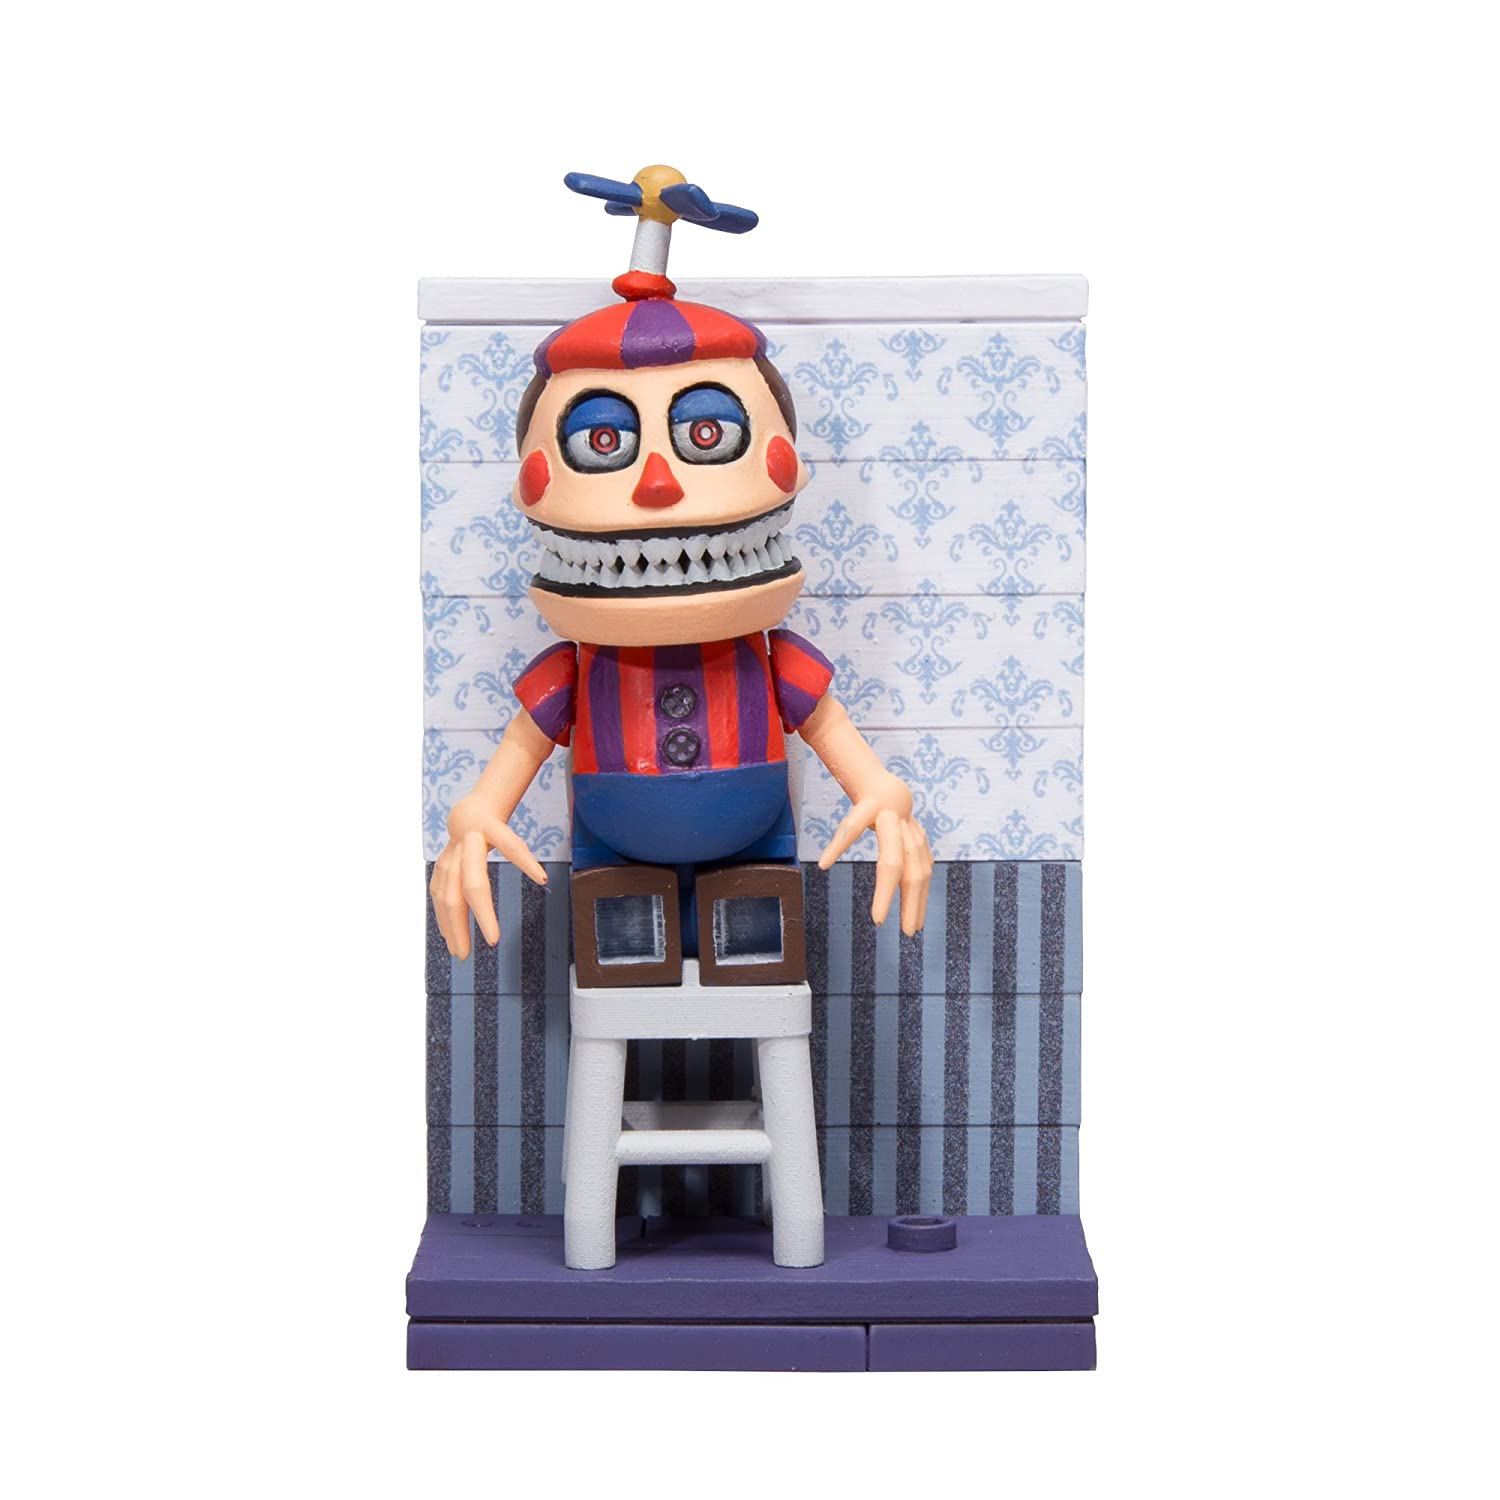 Five Nights At Freddy's Construction Set Fun With Balloon Boy Micro Set Neca 12665-5